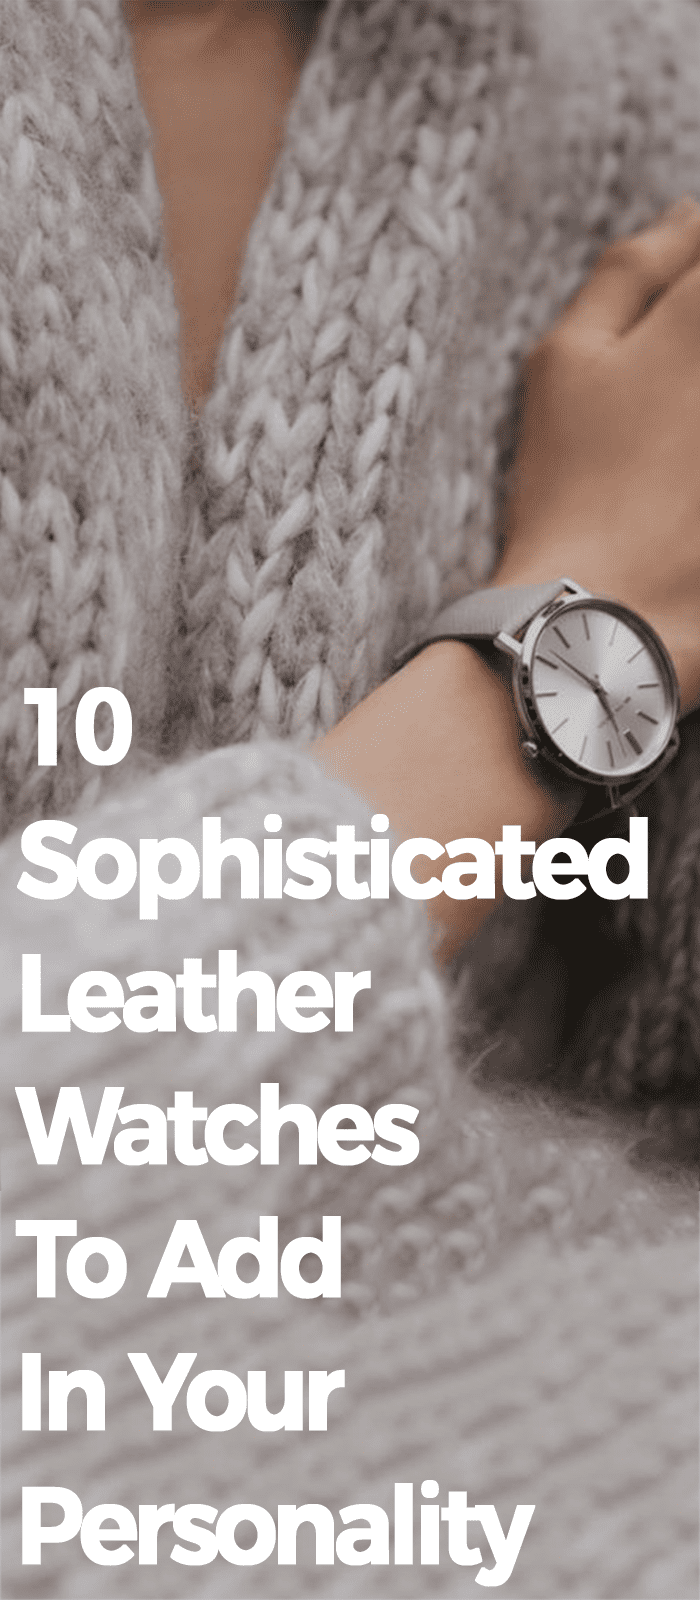 Sophisticated Leather Watches To Add In Your Personality